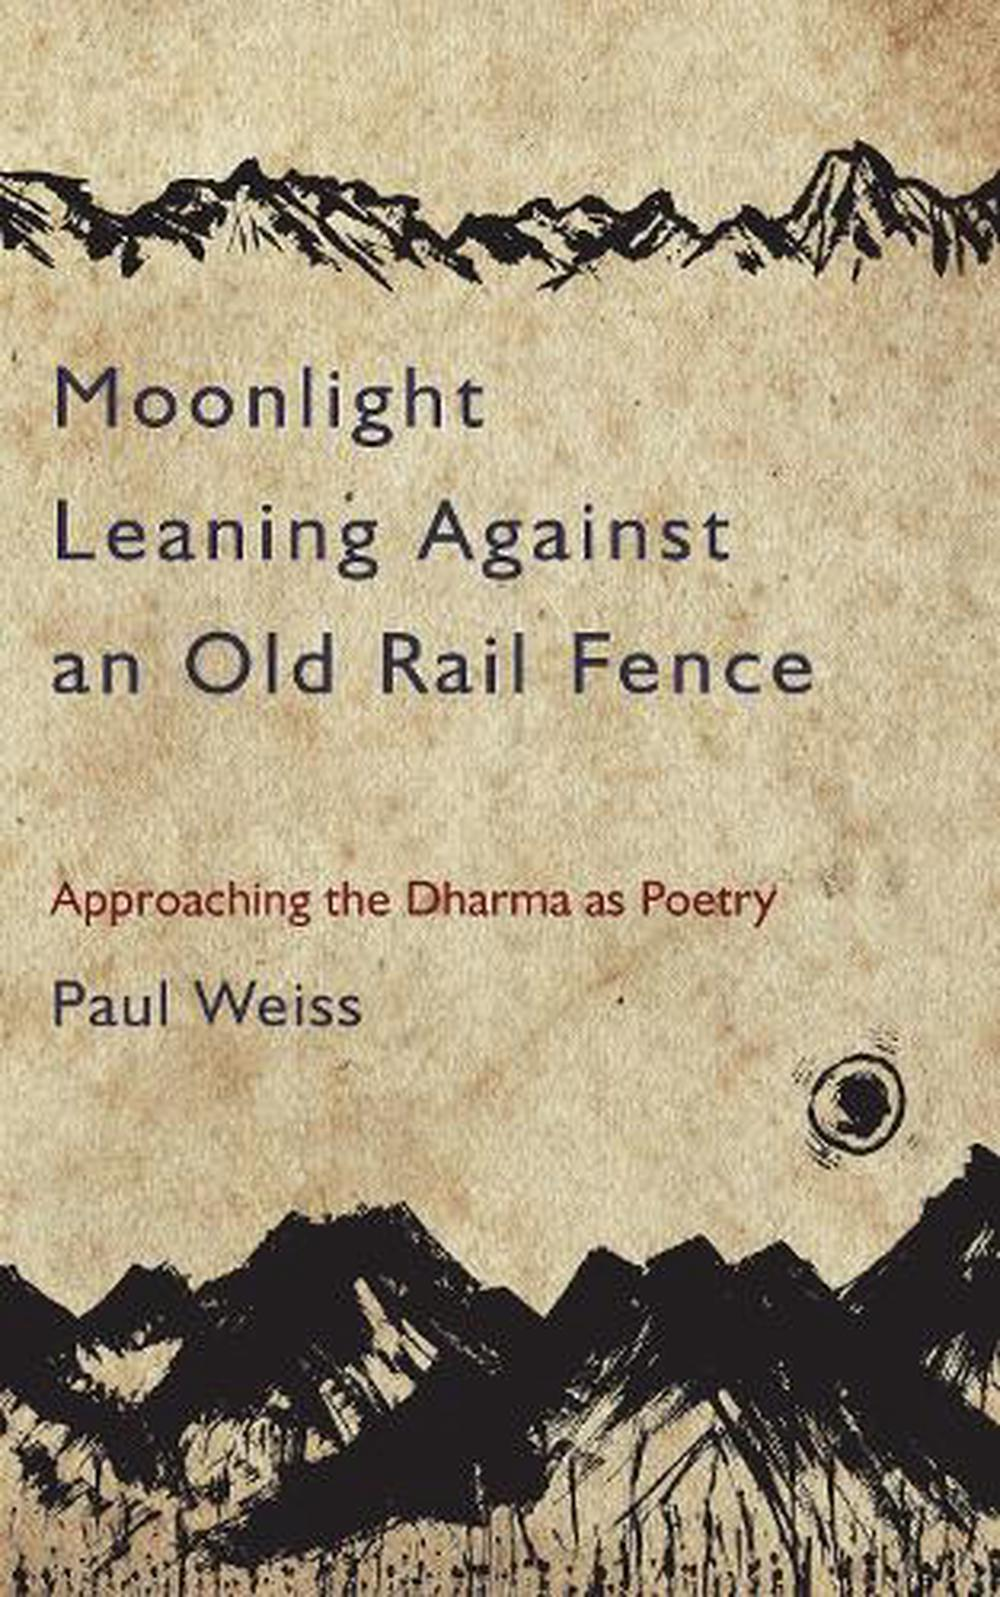 Moonlight Leaning Against An Old Rail Fence